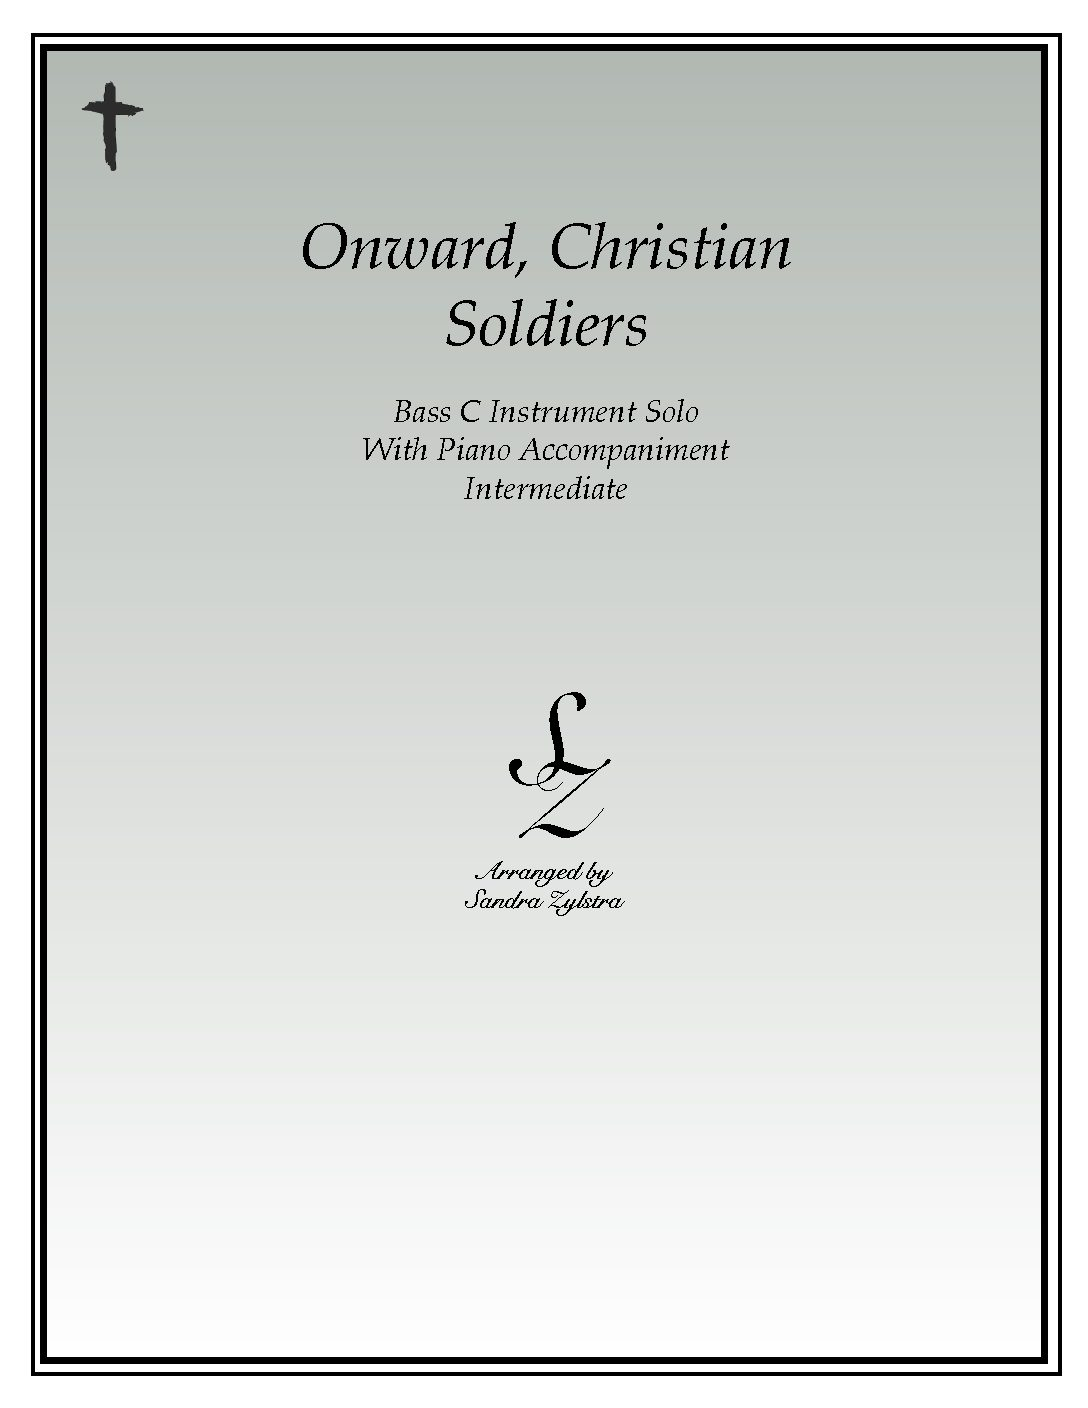 Onward, Christian Soldiers -Bass C Instrument Solo